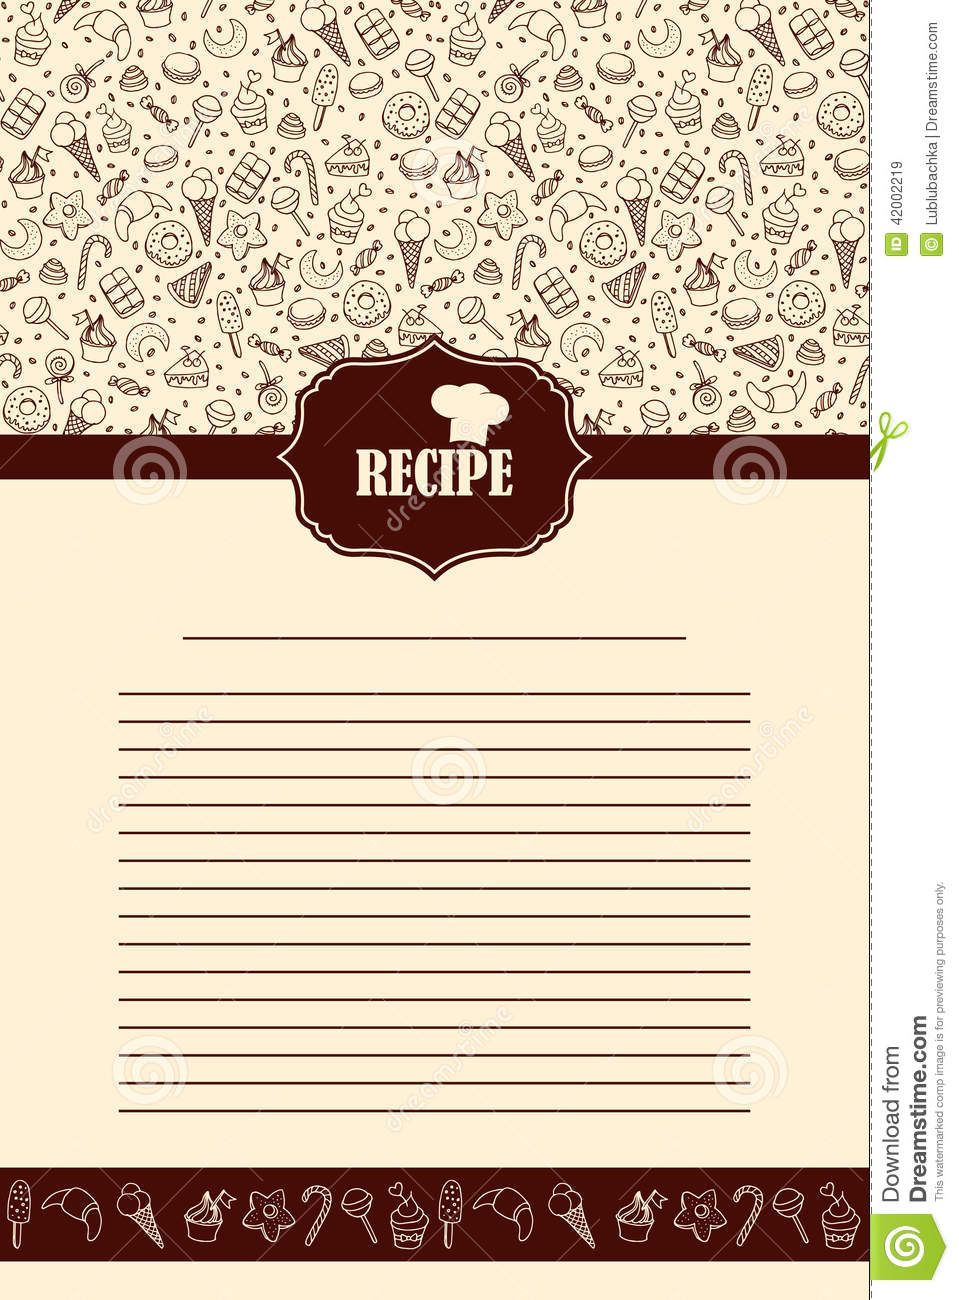 Recipe Book Page With Hand Drawn Sweets Elements Stock Vector Illustration Of Decoration